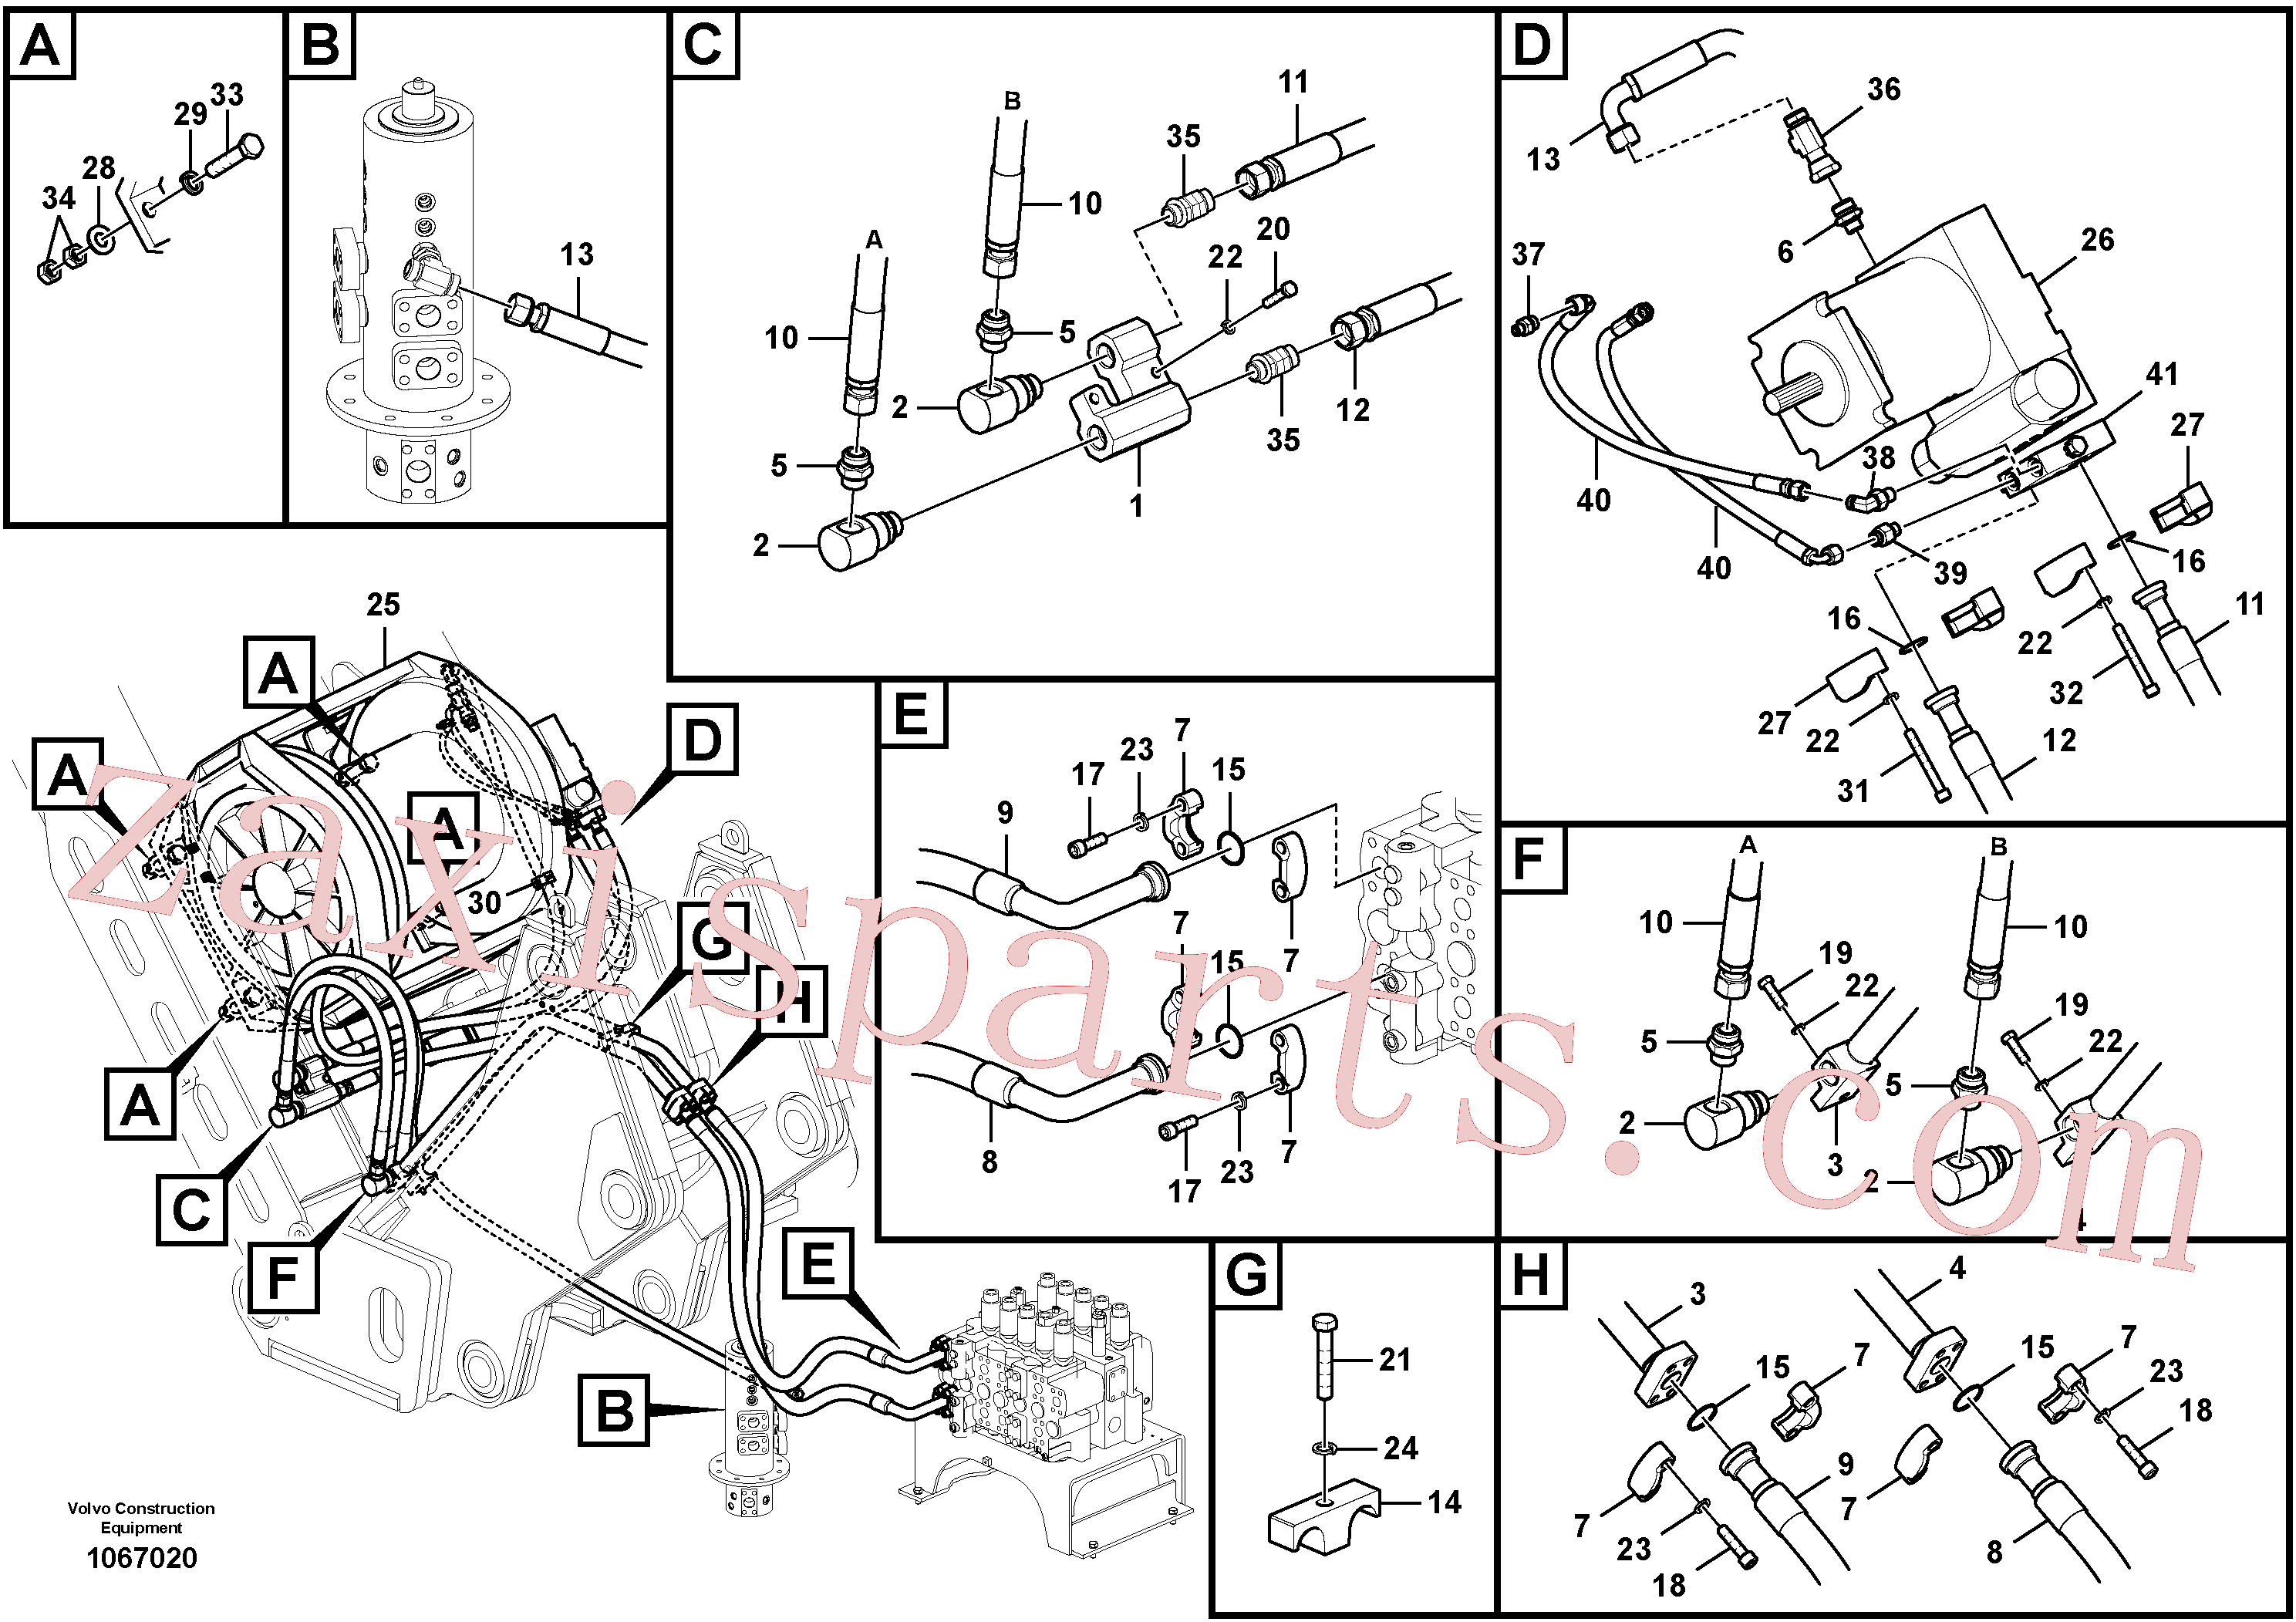 VOE15056768 for Volvo Work hydraulics, winch and motor(1067020 assembly)